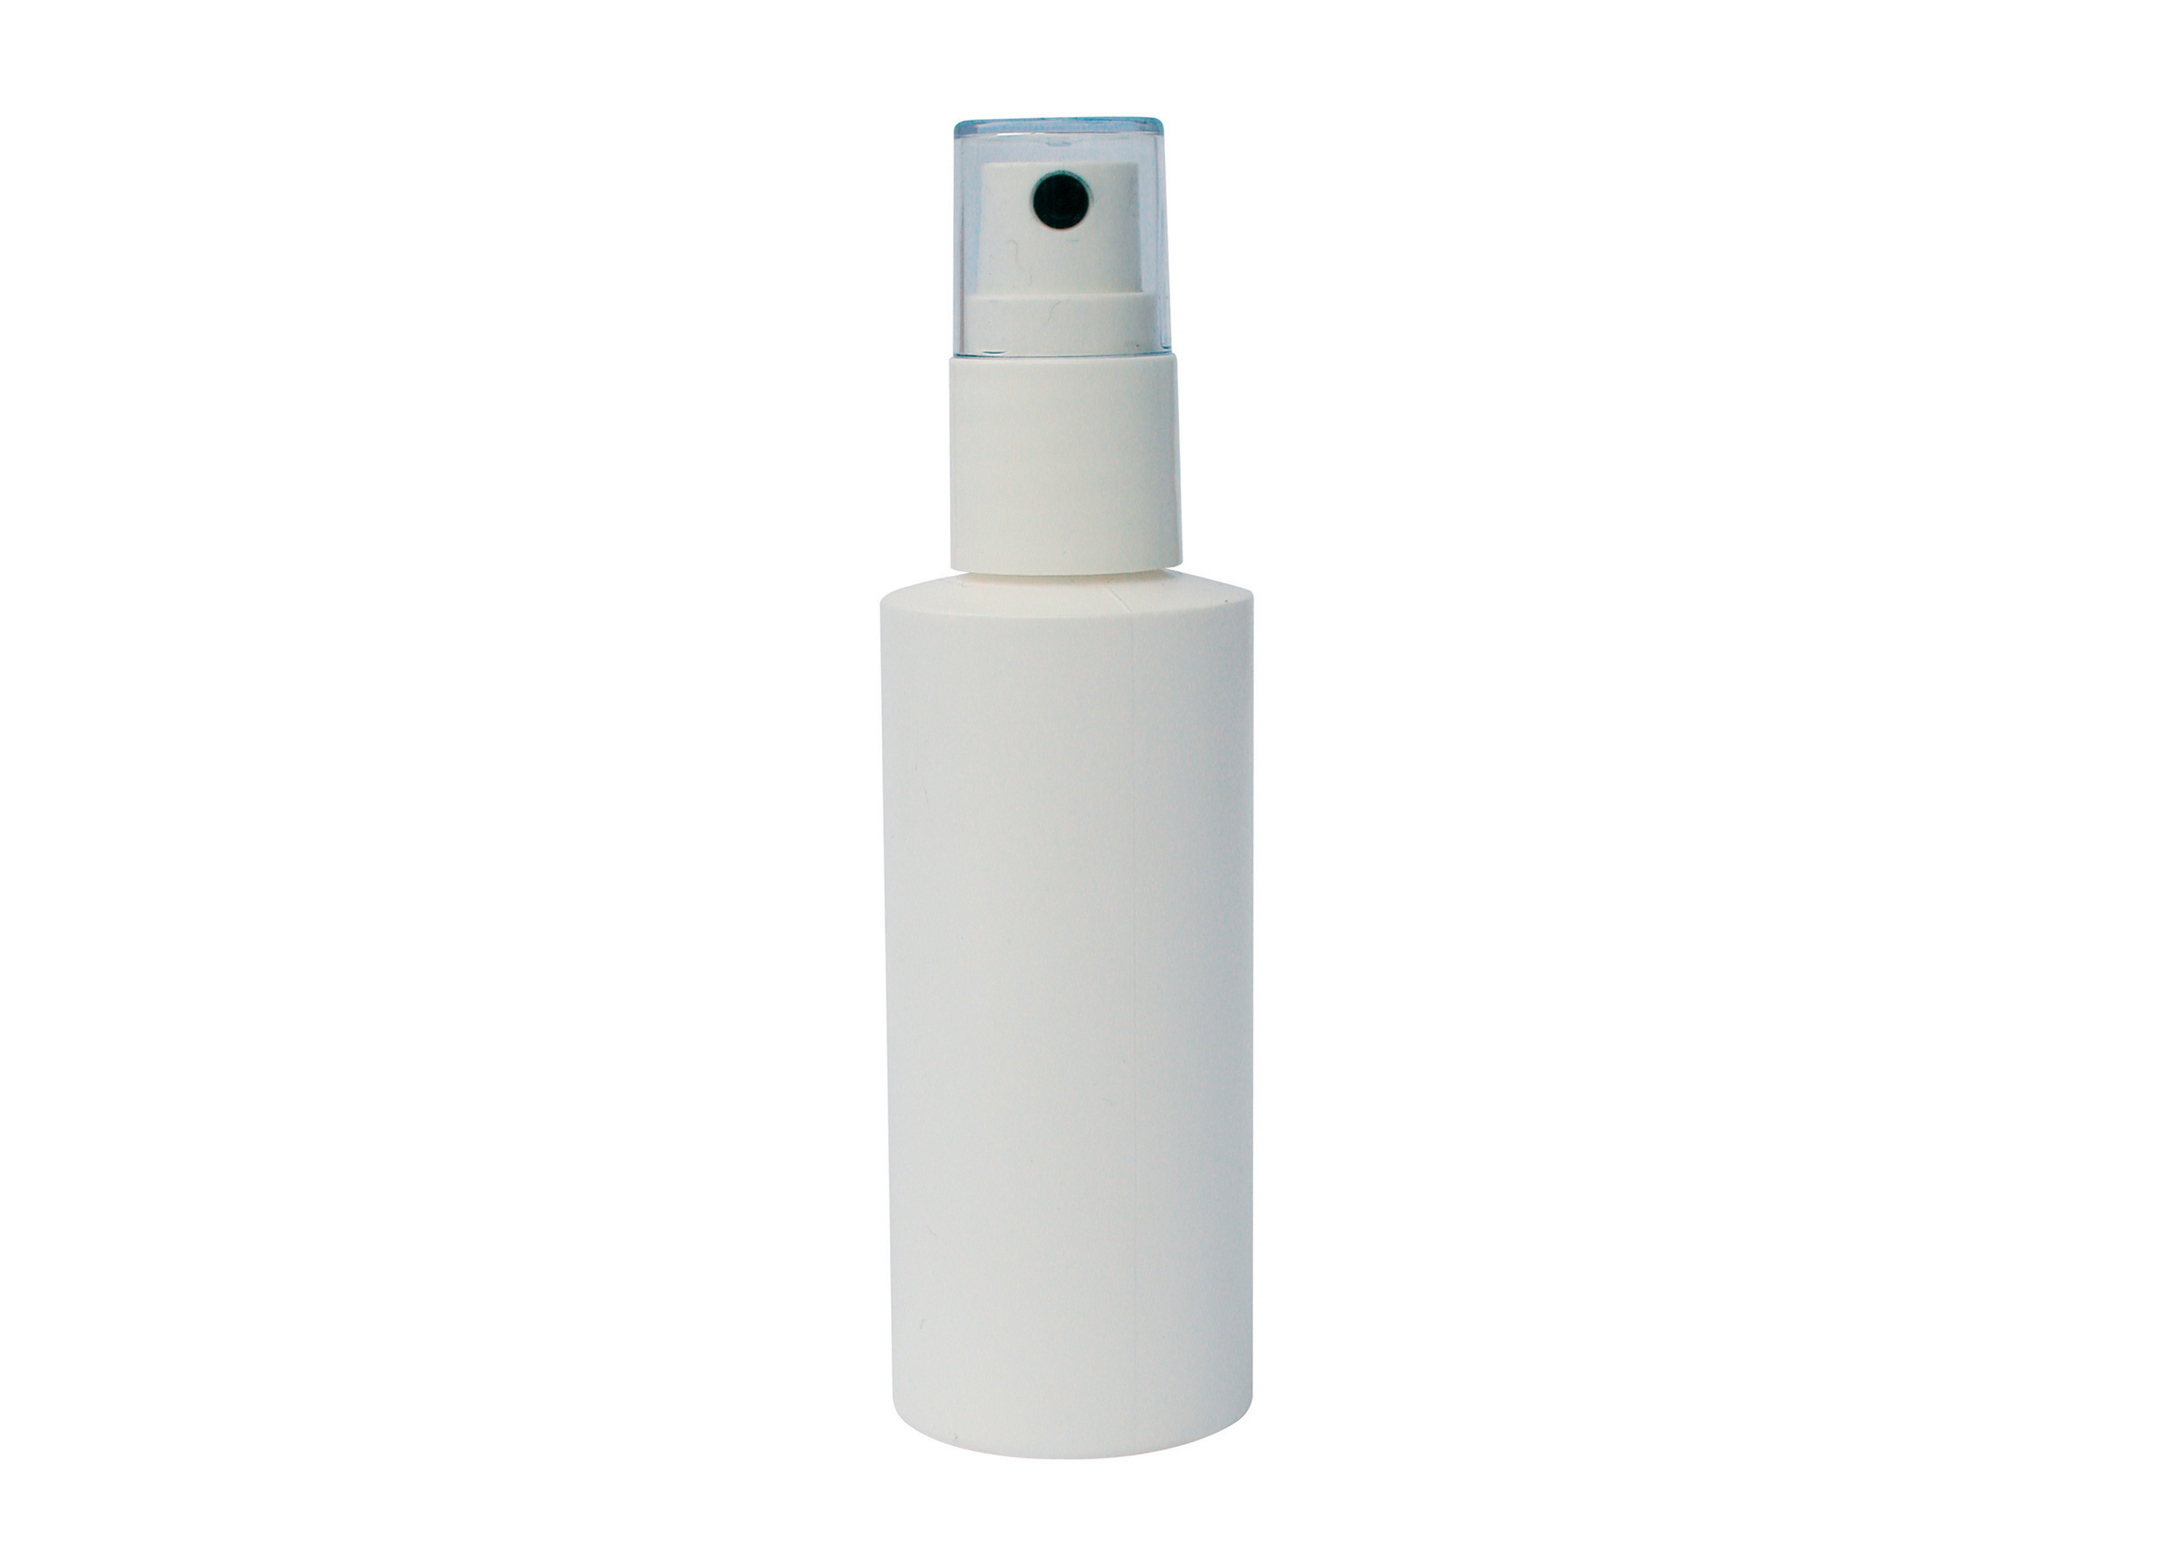 Show Tech Spray Bottle Show Ring Model 60 ml Pressure Spray